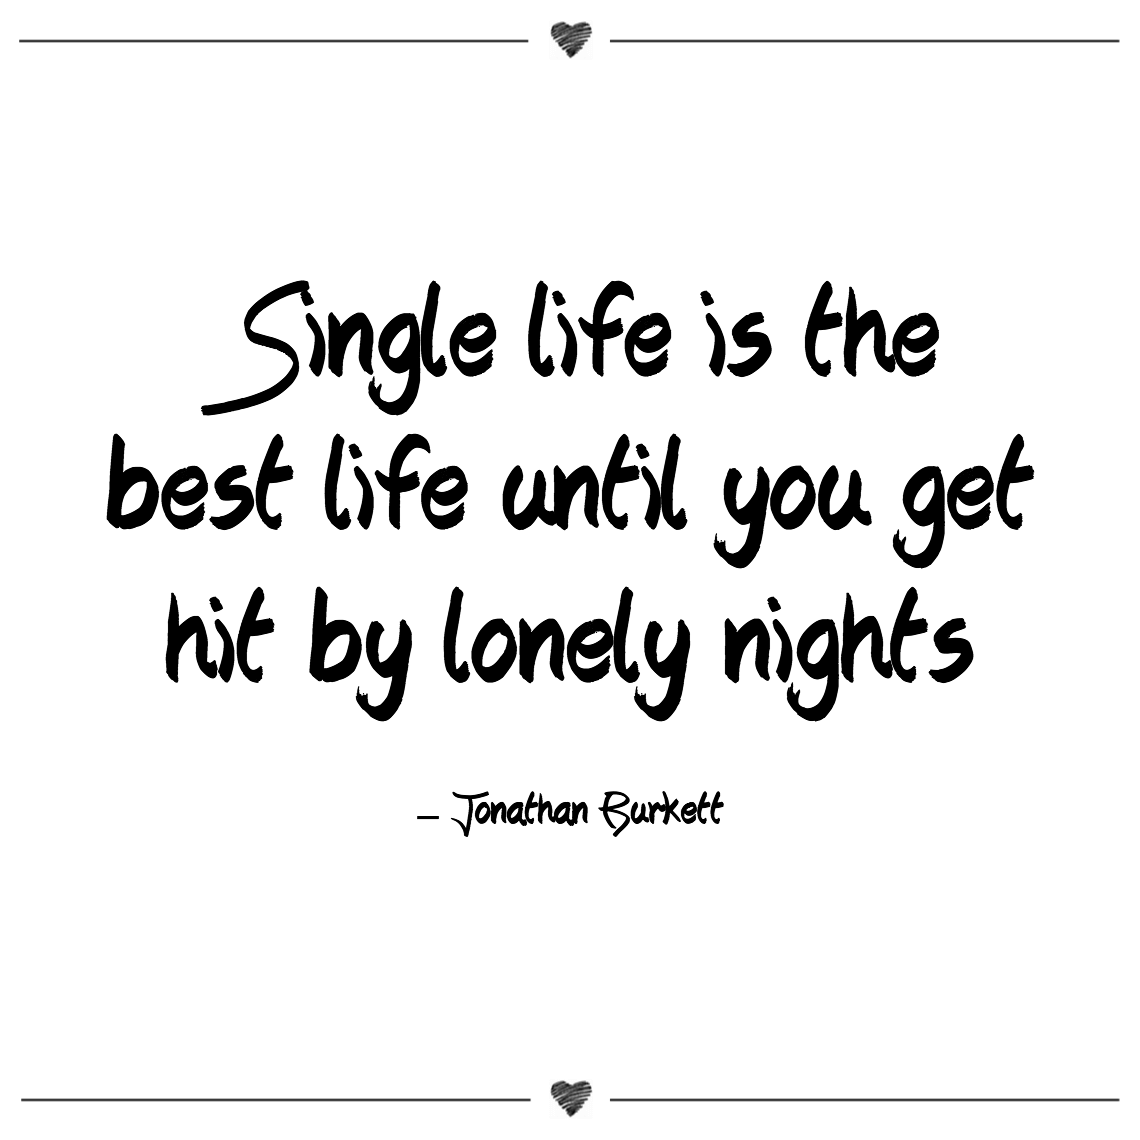 Single life is the best life until you get hit by lonely nights jonathan burkett (1)